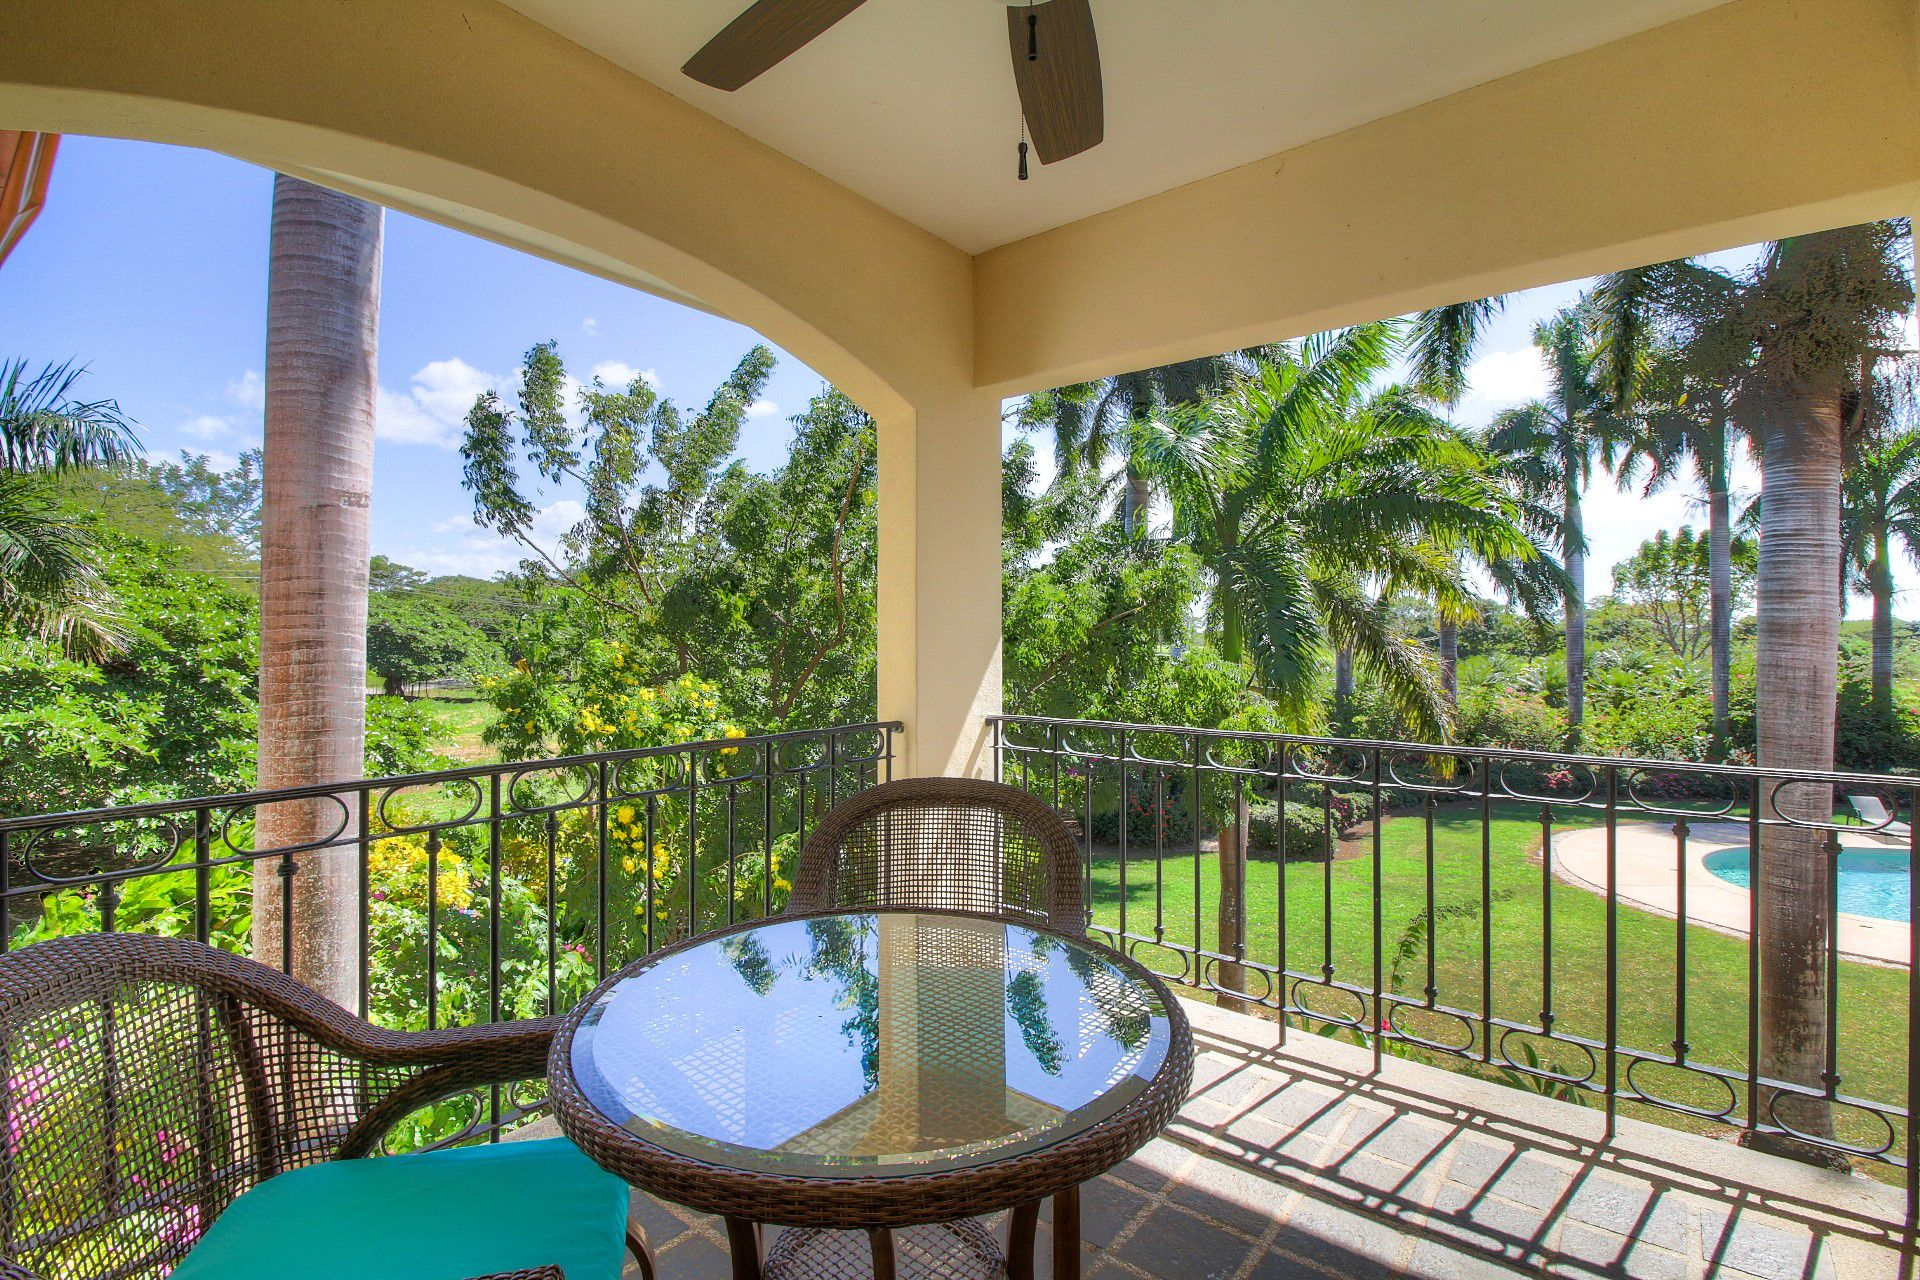 Enjoy quiet moments overlooking the pool and garden